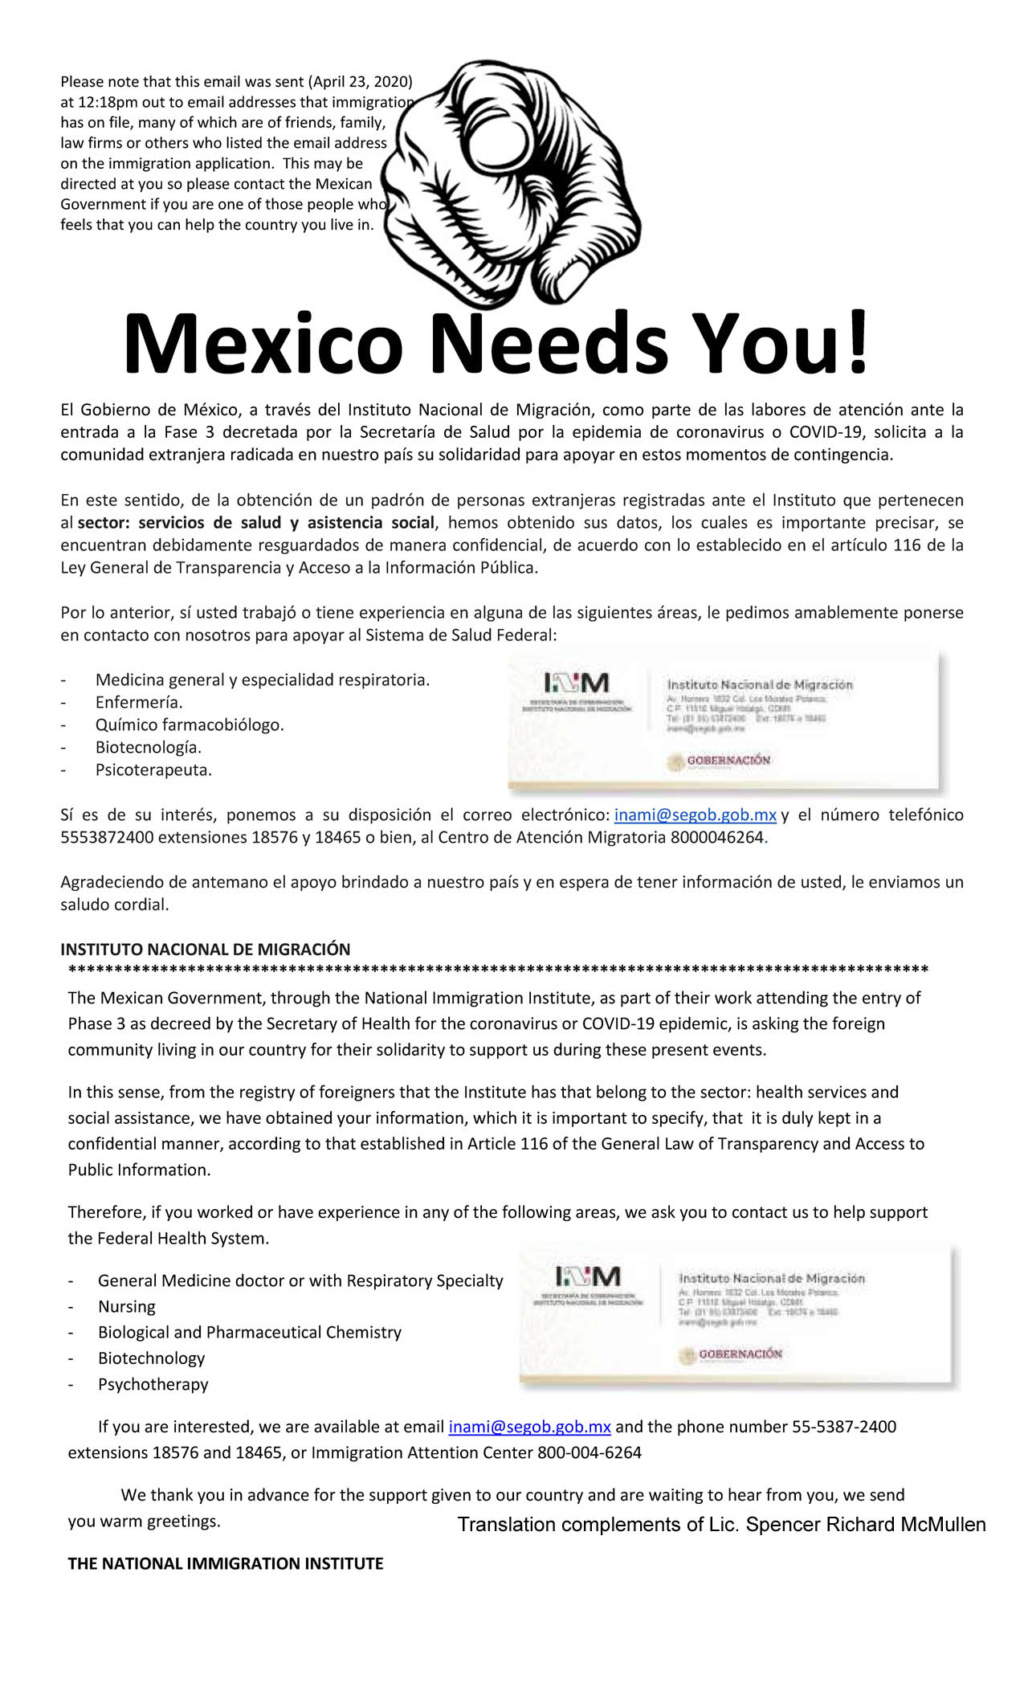 Mexico calling all foreign doctors, nurses, chemists and therapists living in Mexico Mexico10